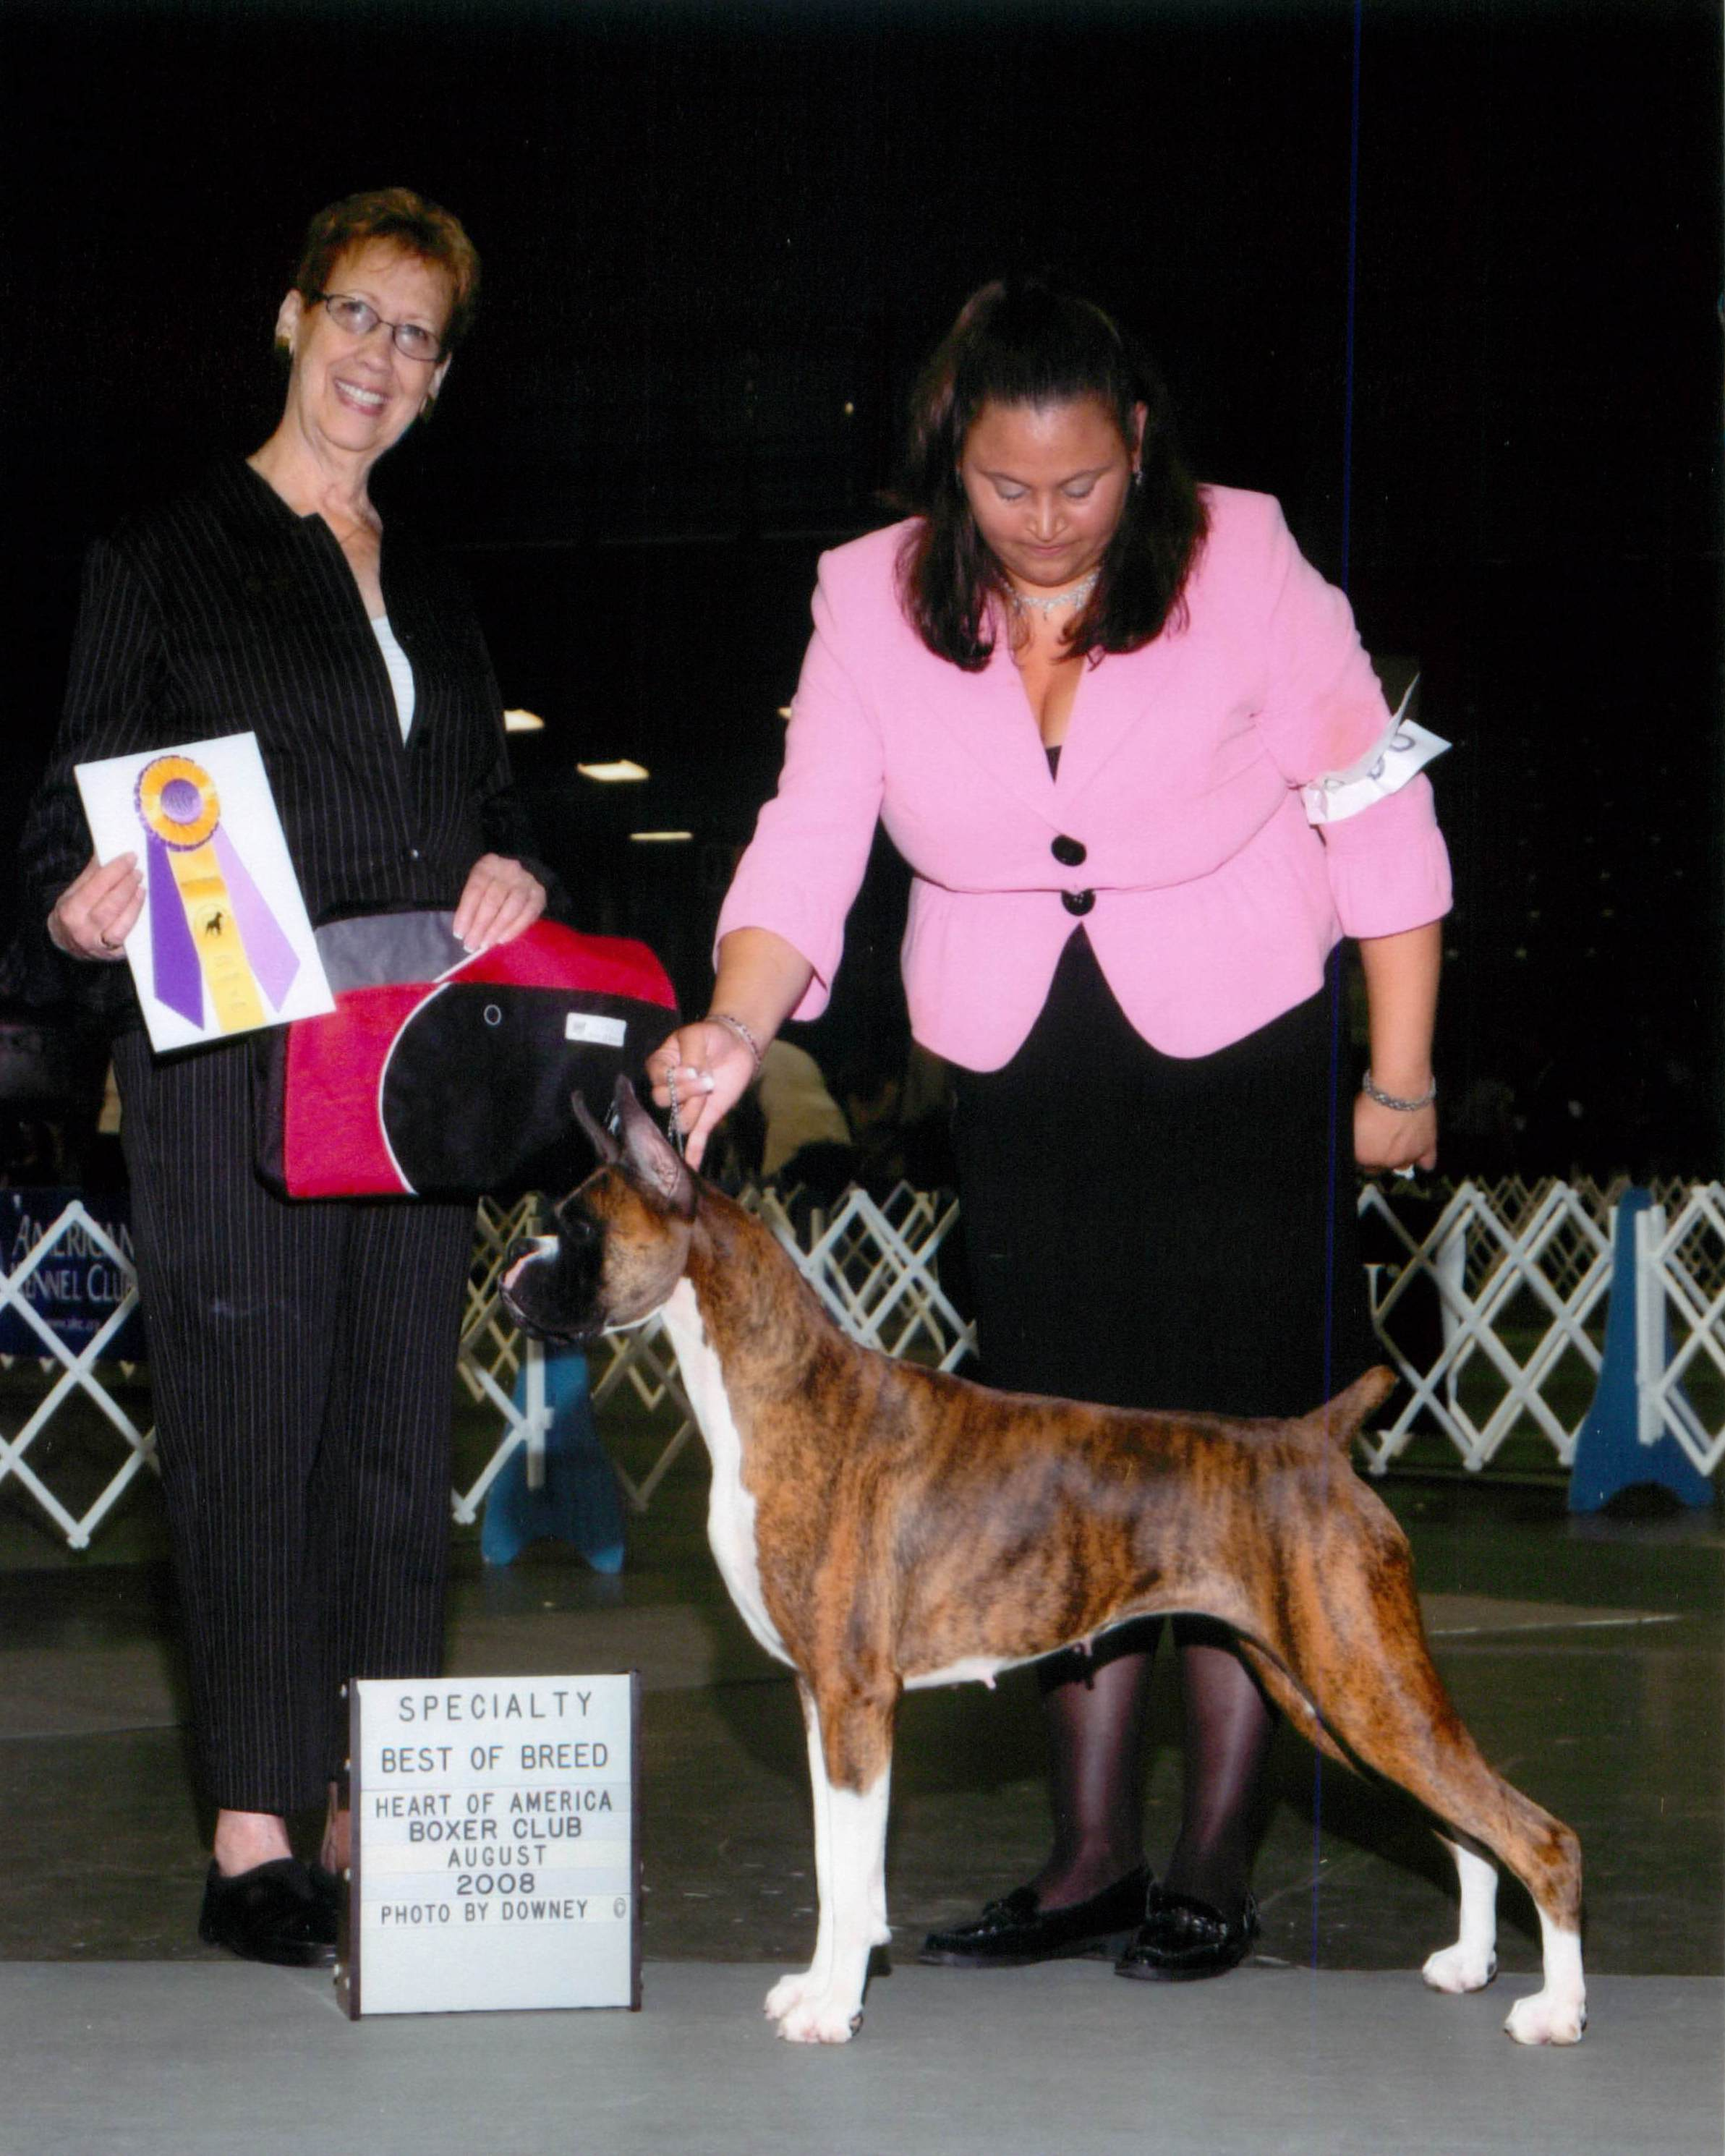 Best of Breed @ 2008 Specialty Show #1